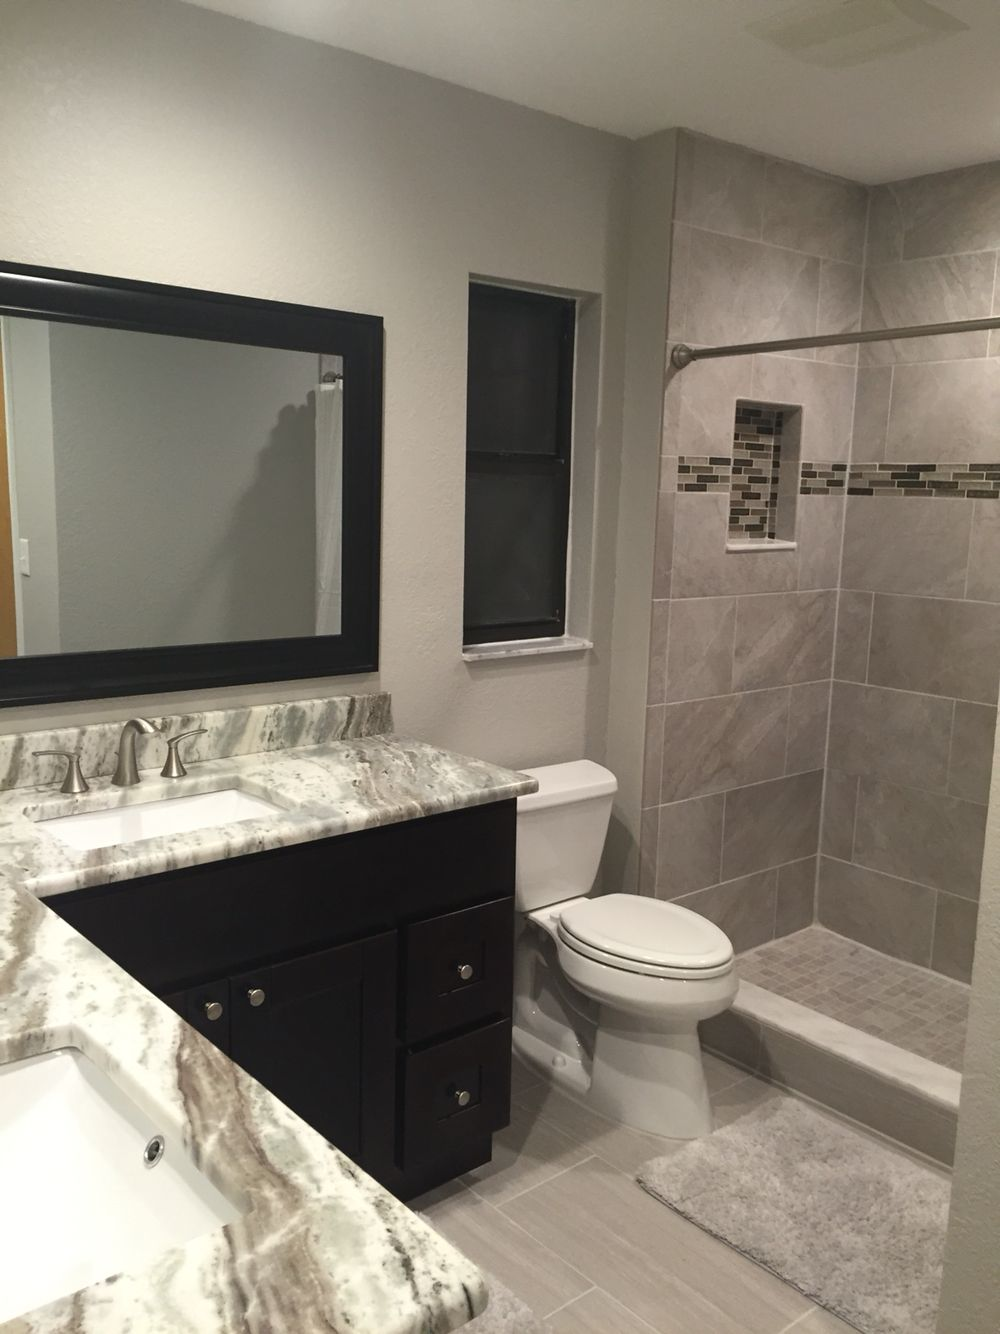 Bathroom Remodel In Greige Tones Brown Fantasy Granite On Espresso Cabinets Sherwin Williams